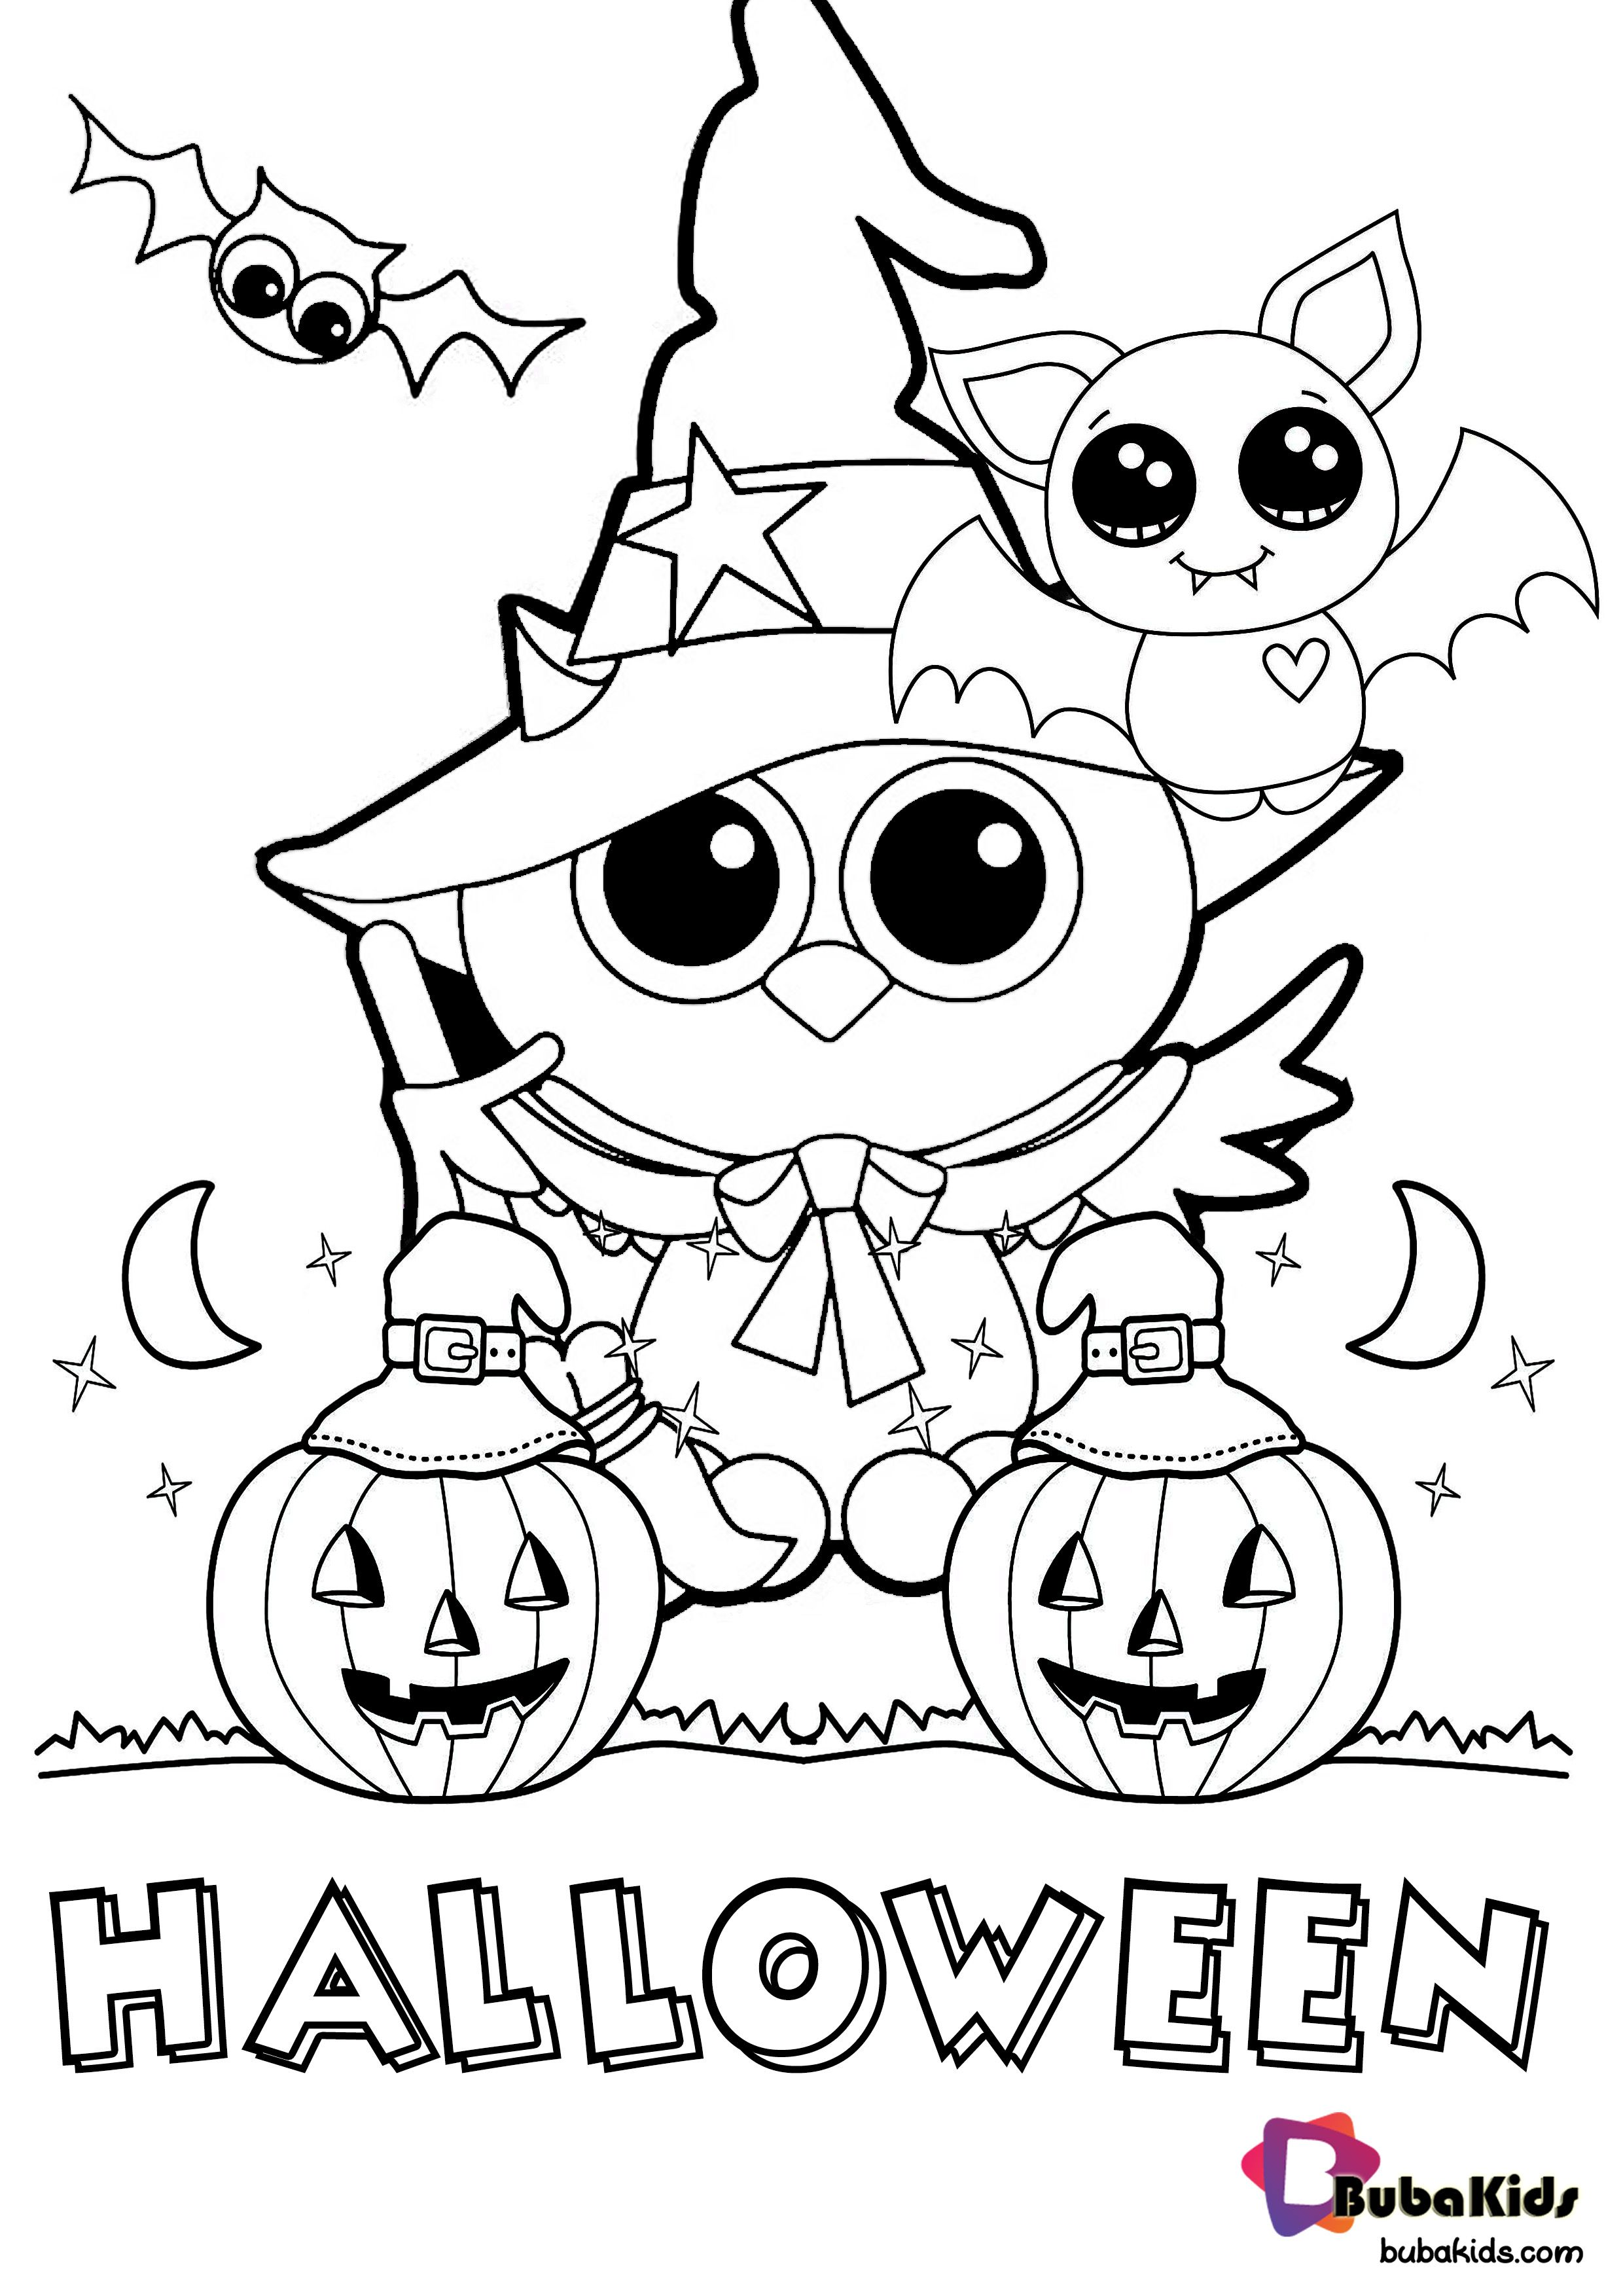 Hello Bubakids Let S Coloring This Halloween Coloring Pages Printabl Halloween Coloring Book Free Halloween Coloring Pages Halloween Coloring Pages Printable [ 3508 x 2480 Pixel ]